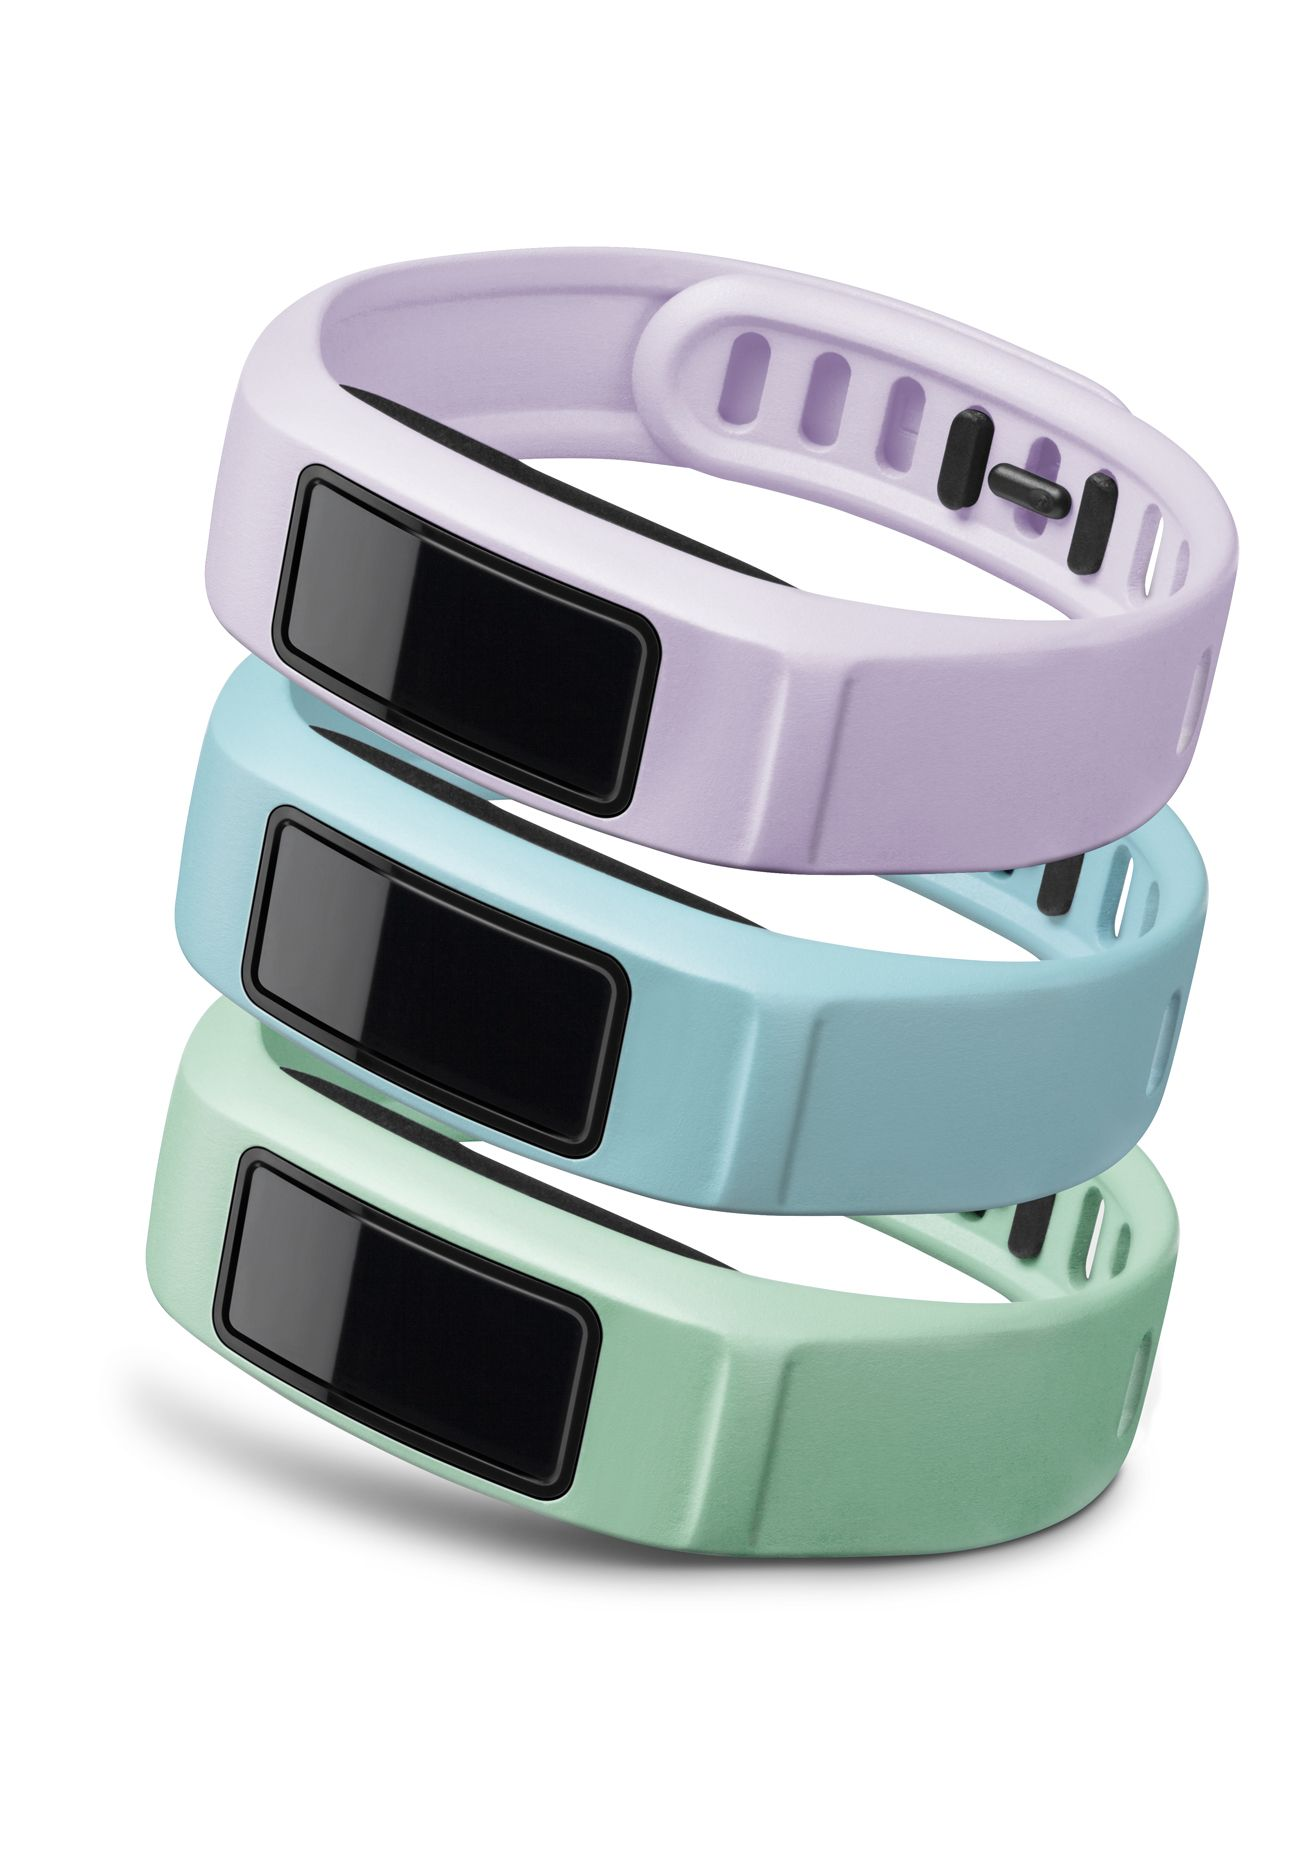 Garmin Vivofit 2 Is An Activity Tracker That Features 1 Year Battery Life And Comes